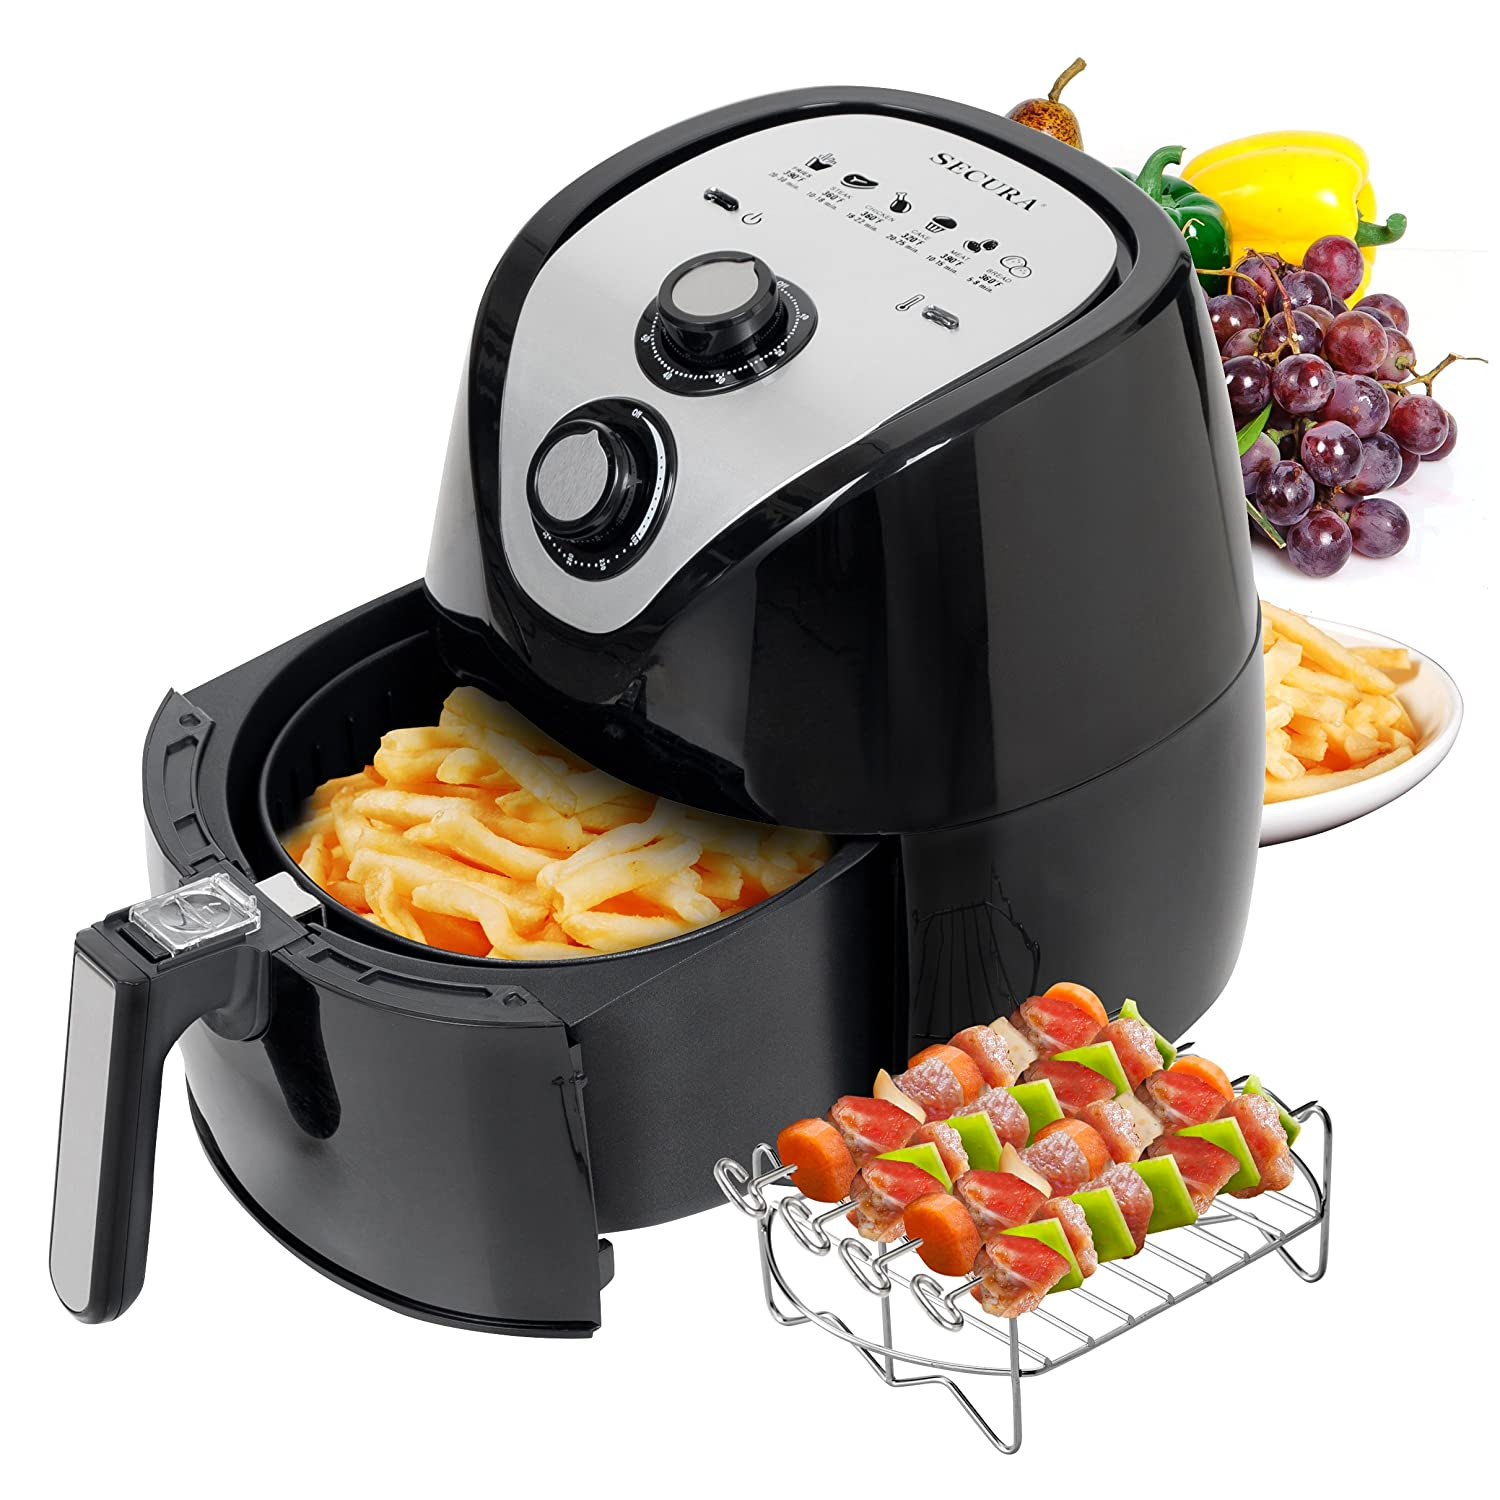 Secura Electric Hot Air Fryer Black Friday Deals